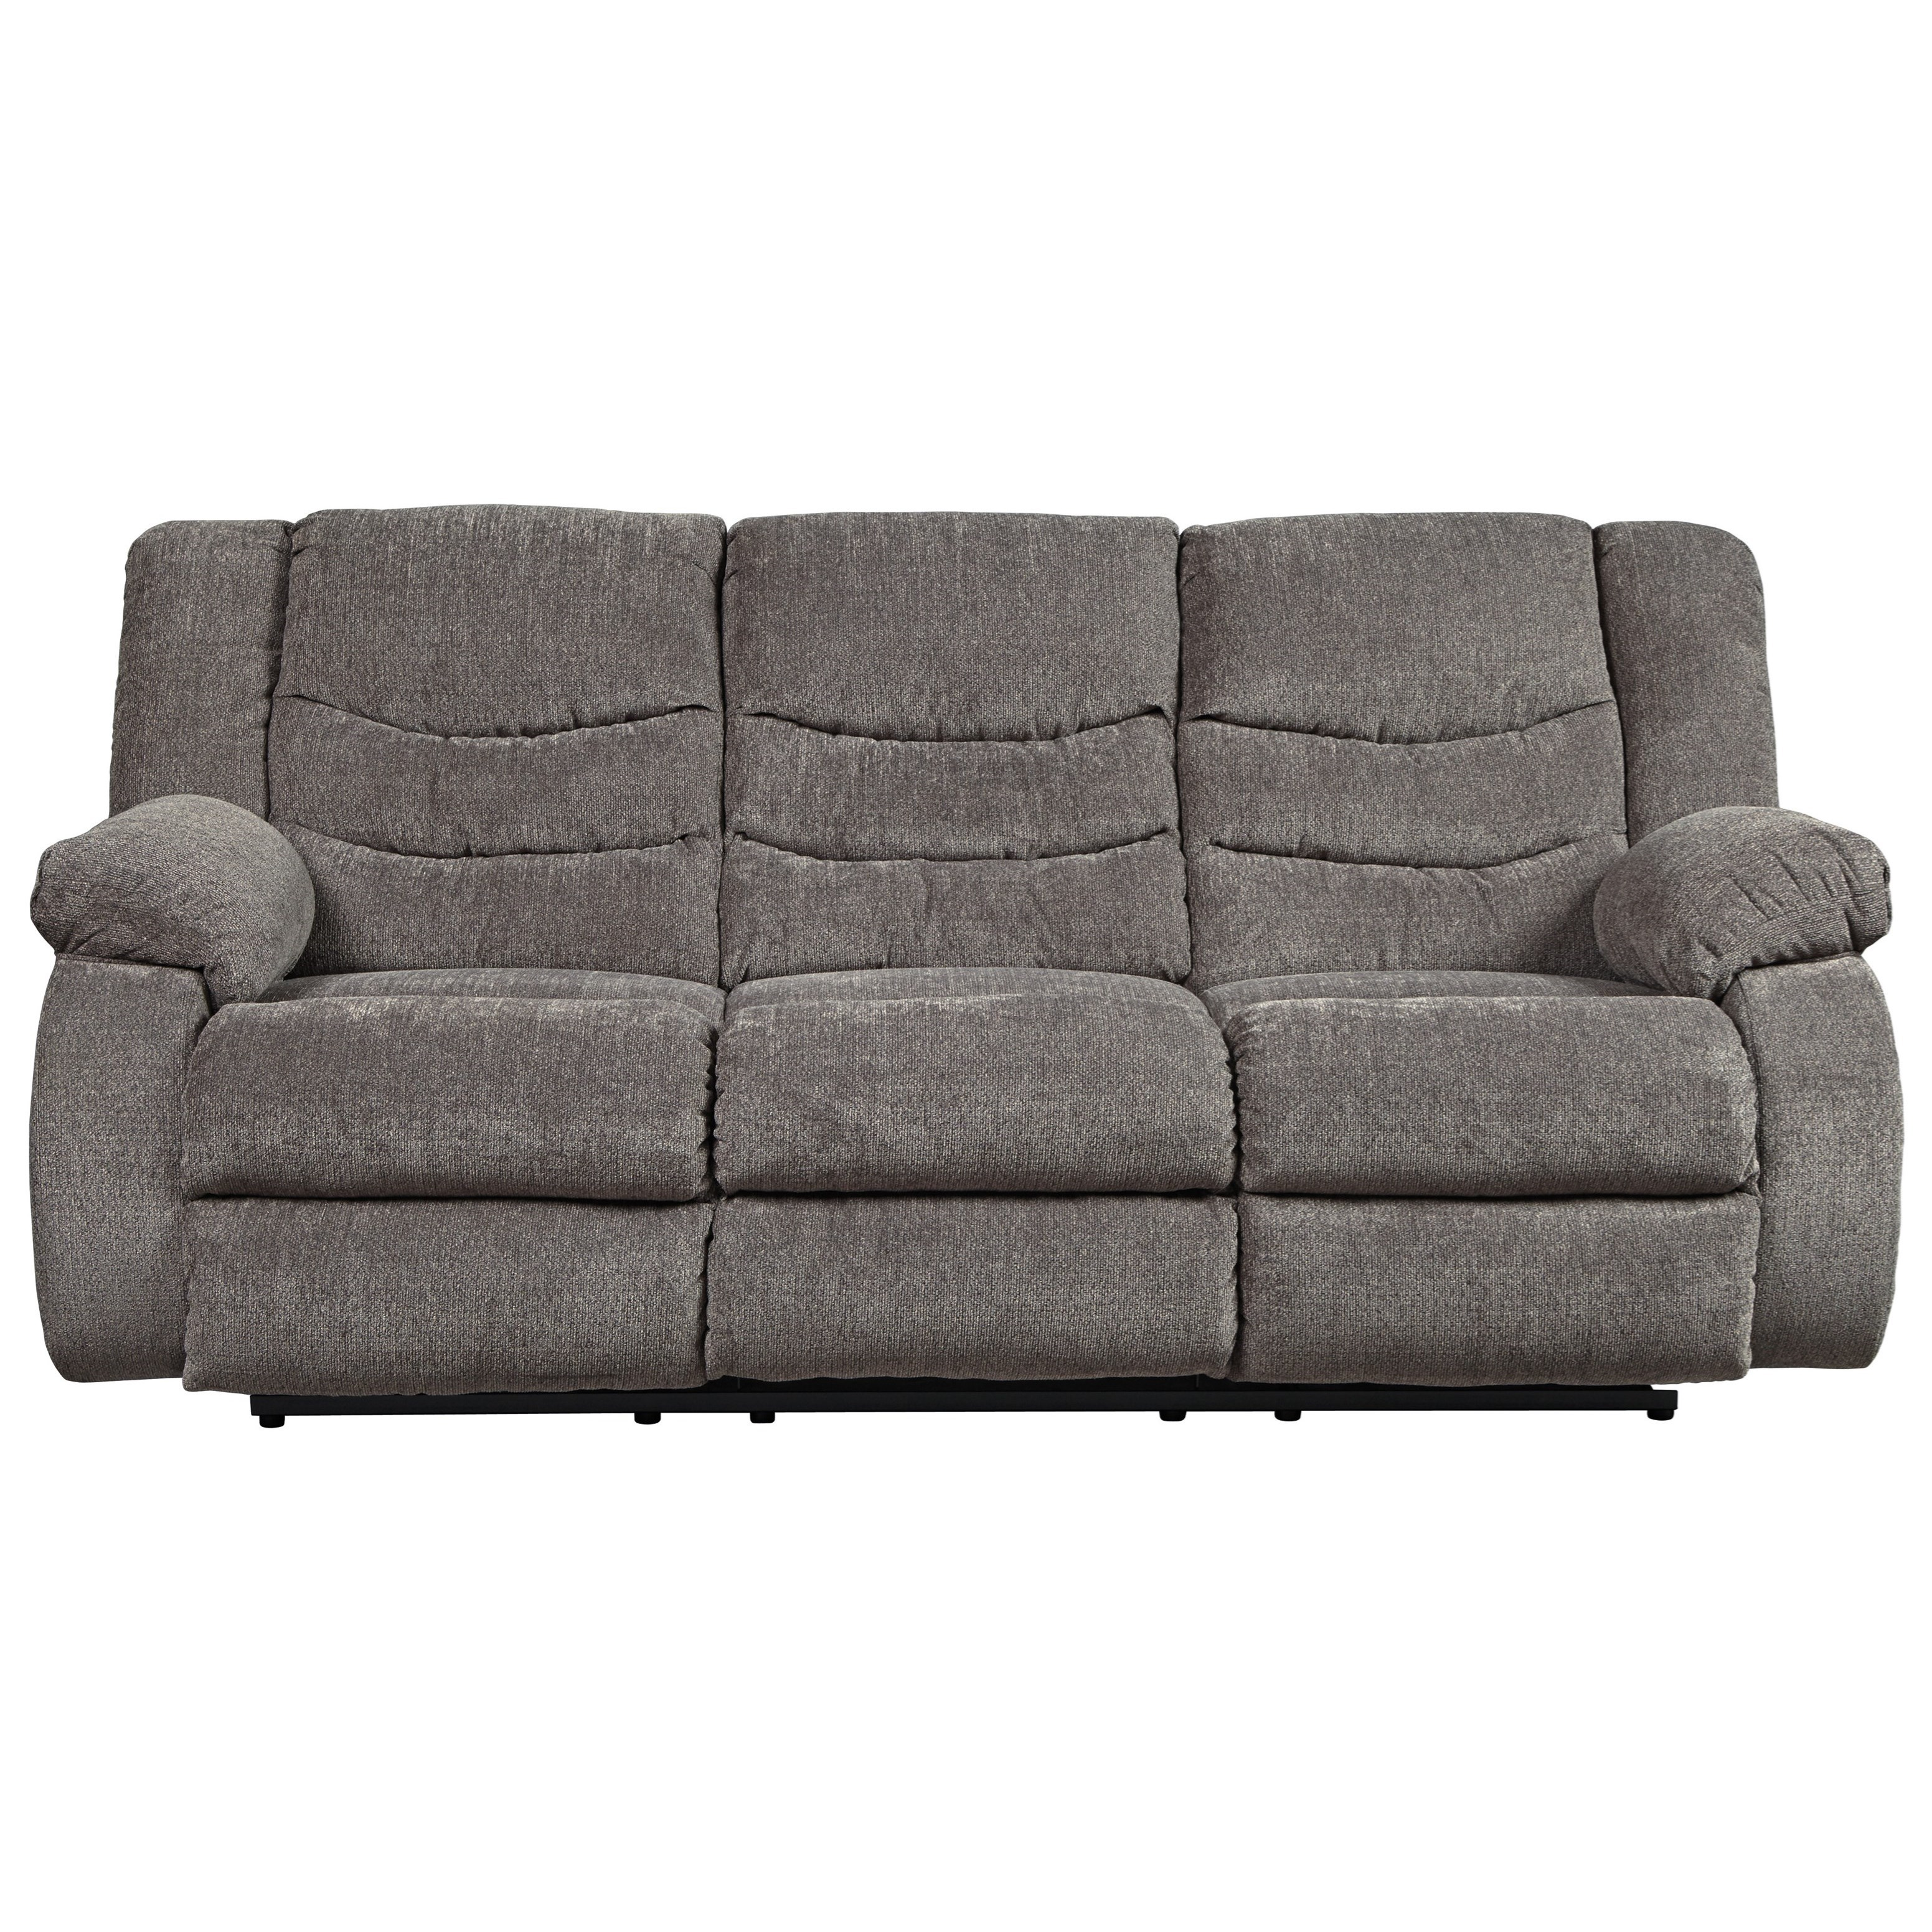 contemporary sofas and loveseats small round corner sofa reclining by signature design ashley